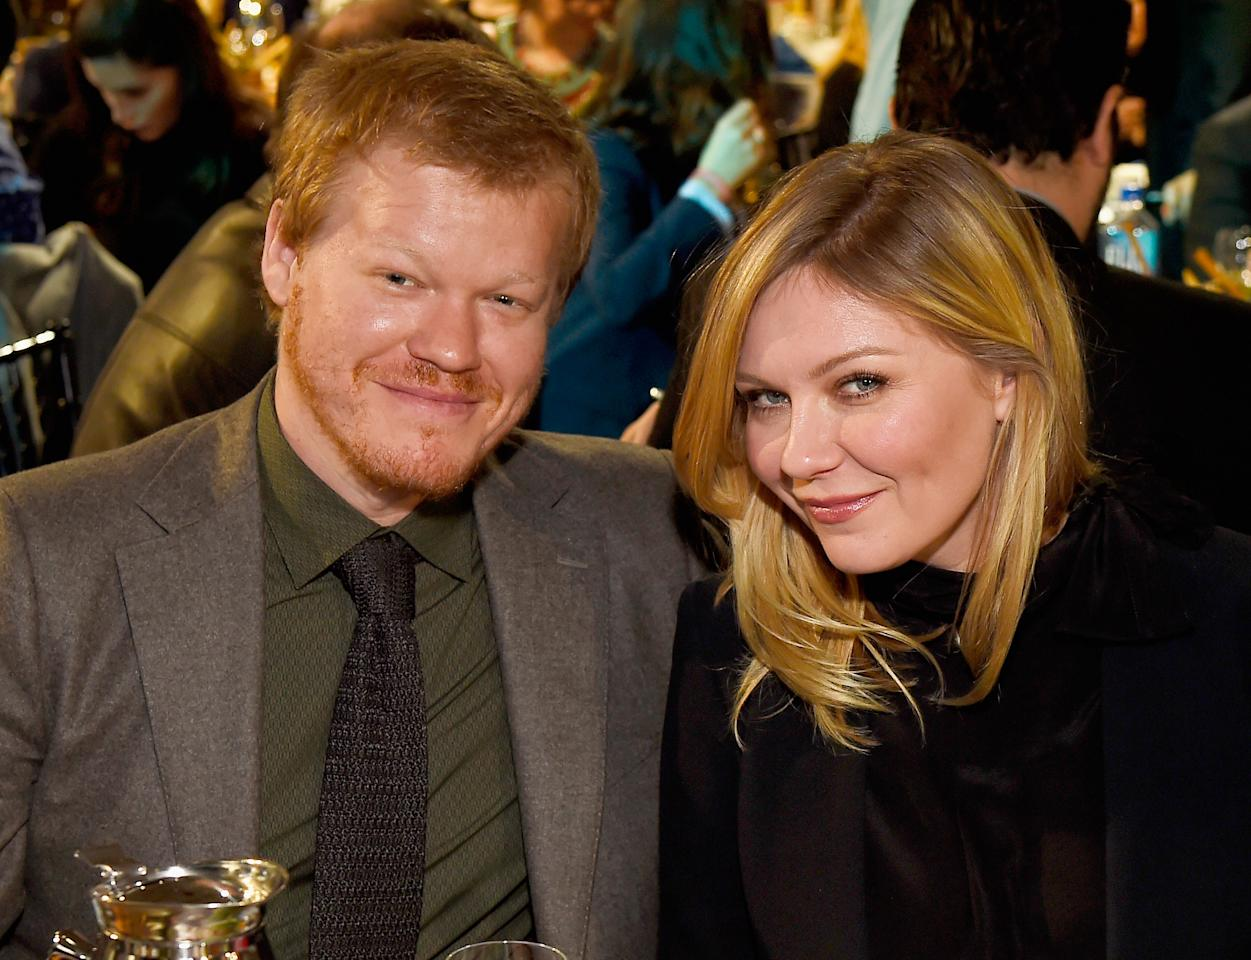 """<p>Congratulations are in order for Kirsten Dunst and her fiancé, actor Jesse Plemons, who have welcomed their first child, a baby boy, on May 3, 2018. And the name is a little on the unusual side.<br />According to a new report in <a rel=""""nofollow"""" href=""""https://theblast.com/kirsten-dunst-jesse-plemons-ennis-howard-baby/""""><em>The Blast</em></a>, Dunst and Plemons have chosen to name their little one Ennis Howard Plemons.<br />Makes us think of Jessica Ennis but we still kinda like it. [Photo: Getty] </p>"""